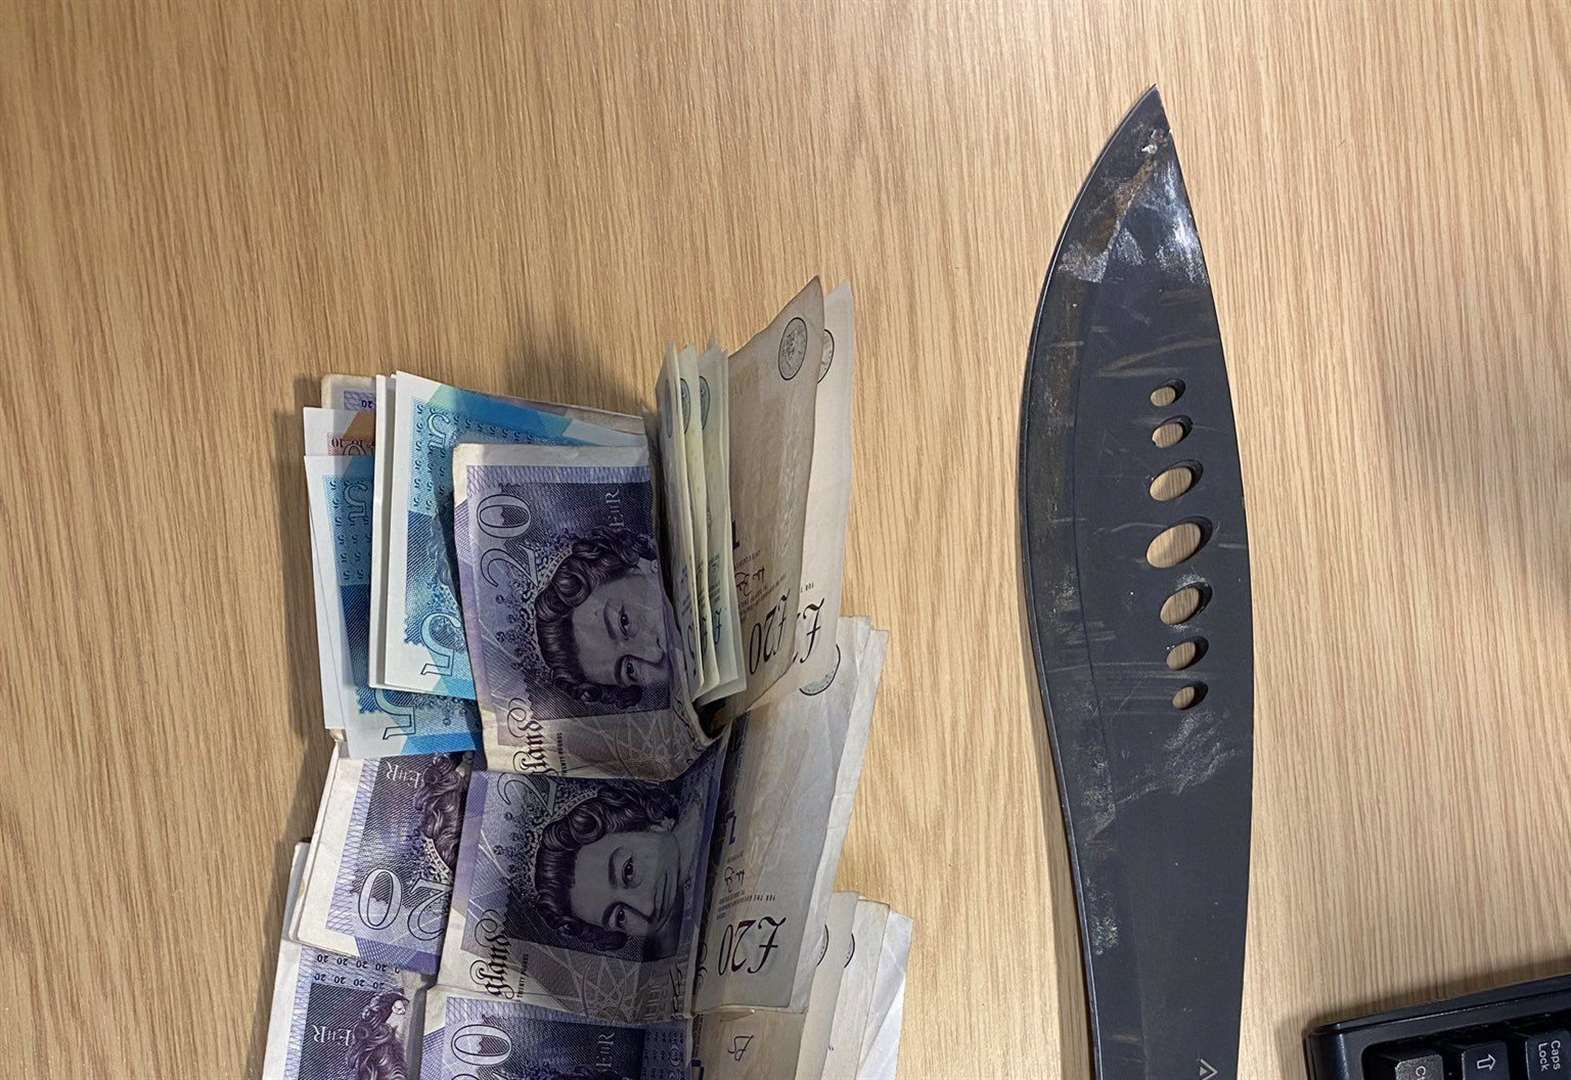 Youth, 17, arrested in Bury after knife and cash found